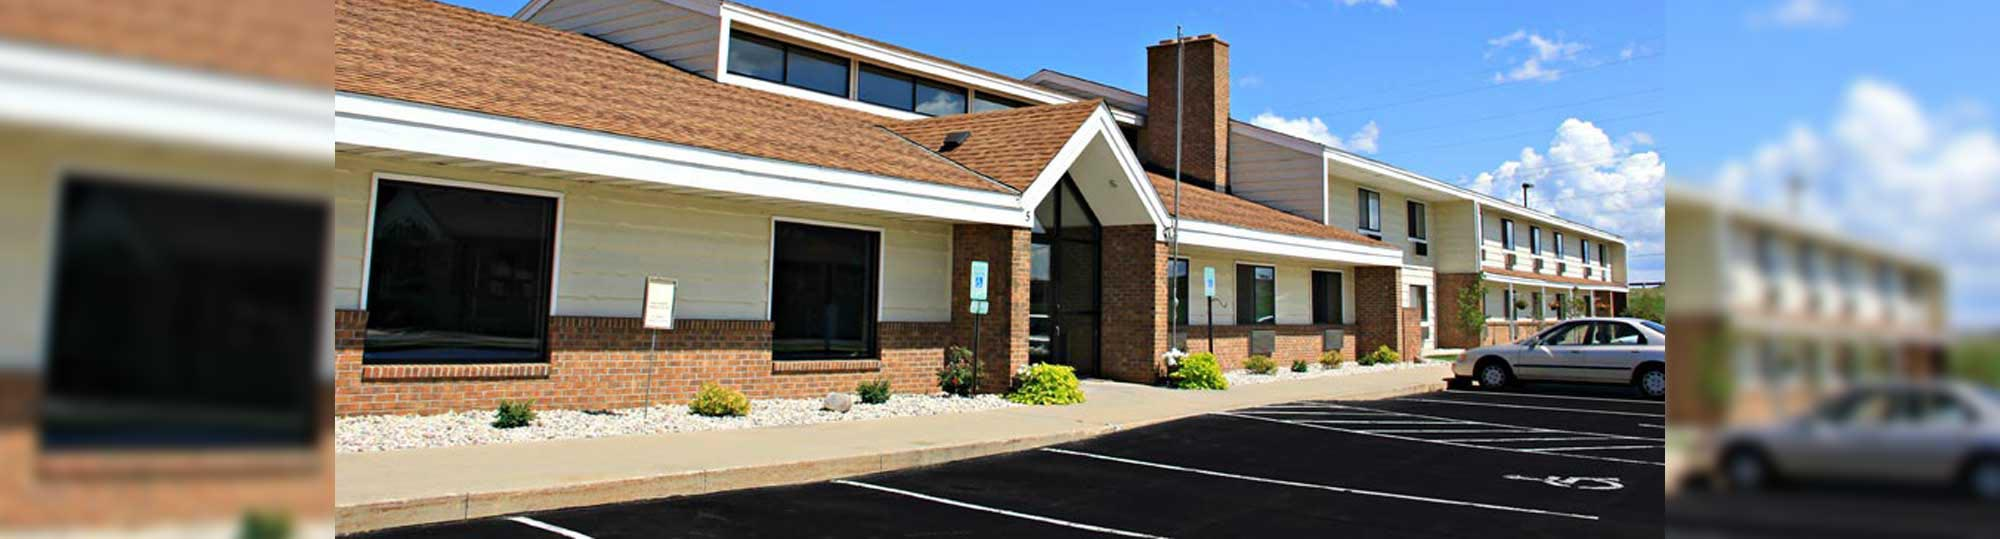 Boarders Inn and Suites Waupun